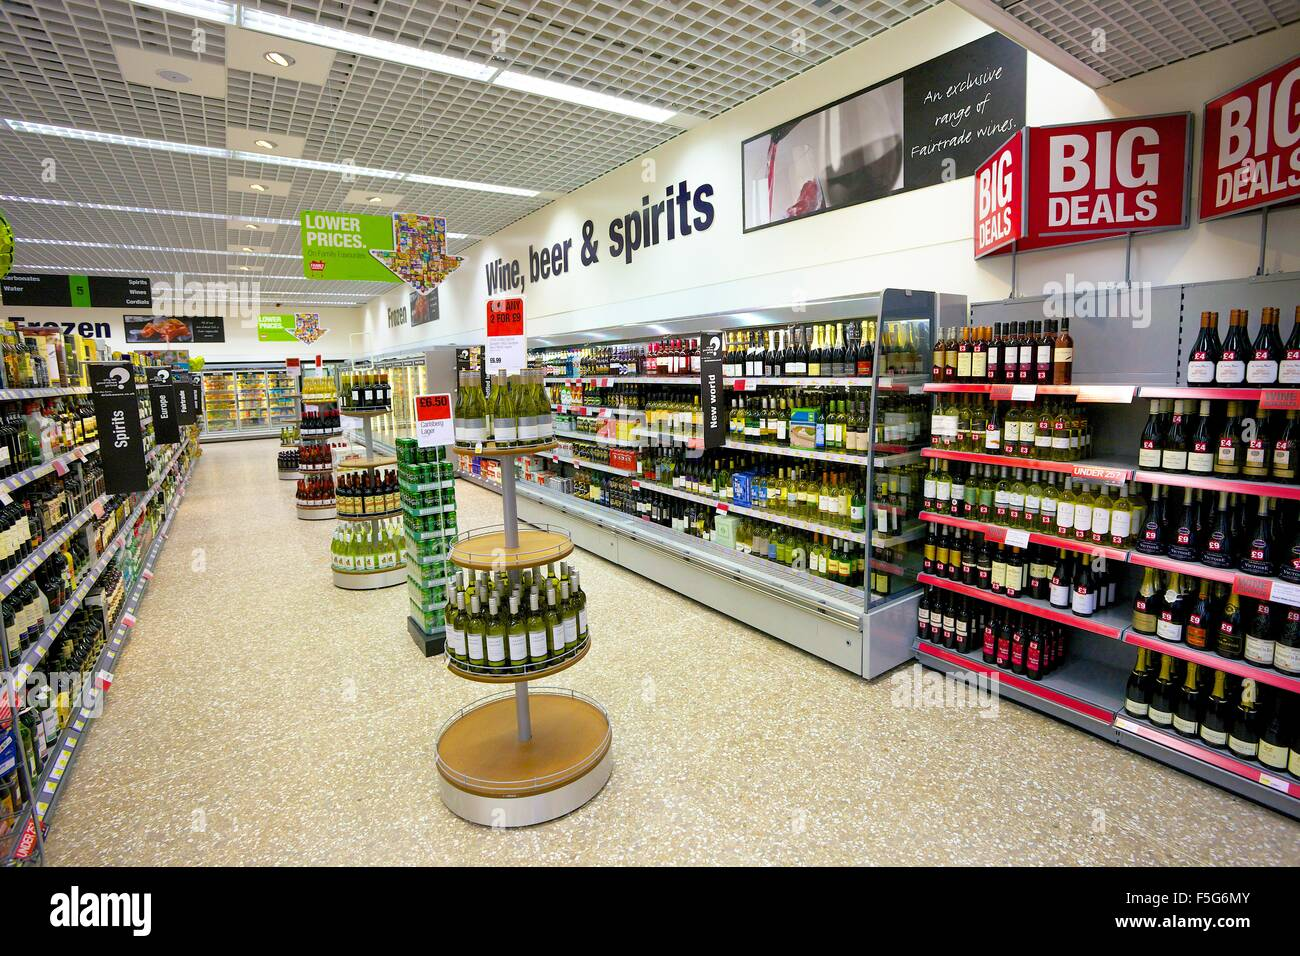 Supermarket aisle. Wines, beers and spirits. - Stock Image